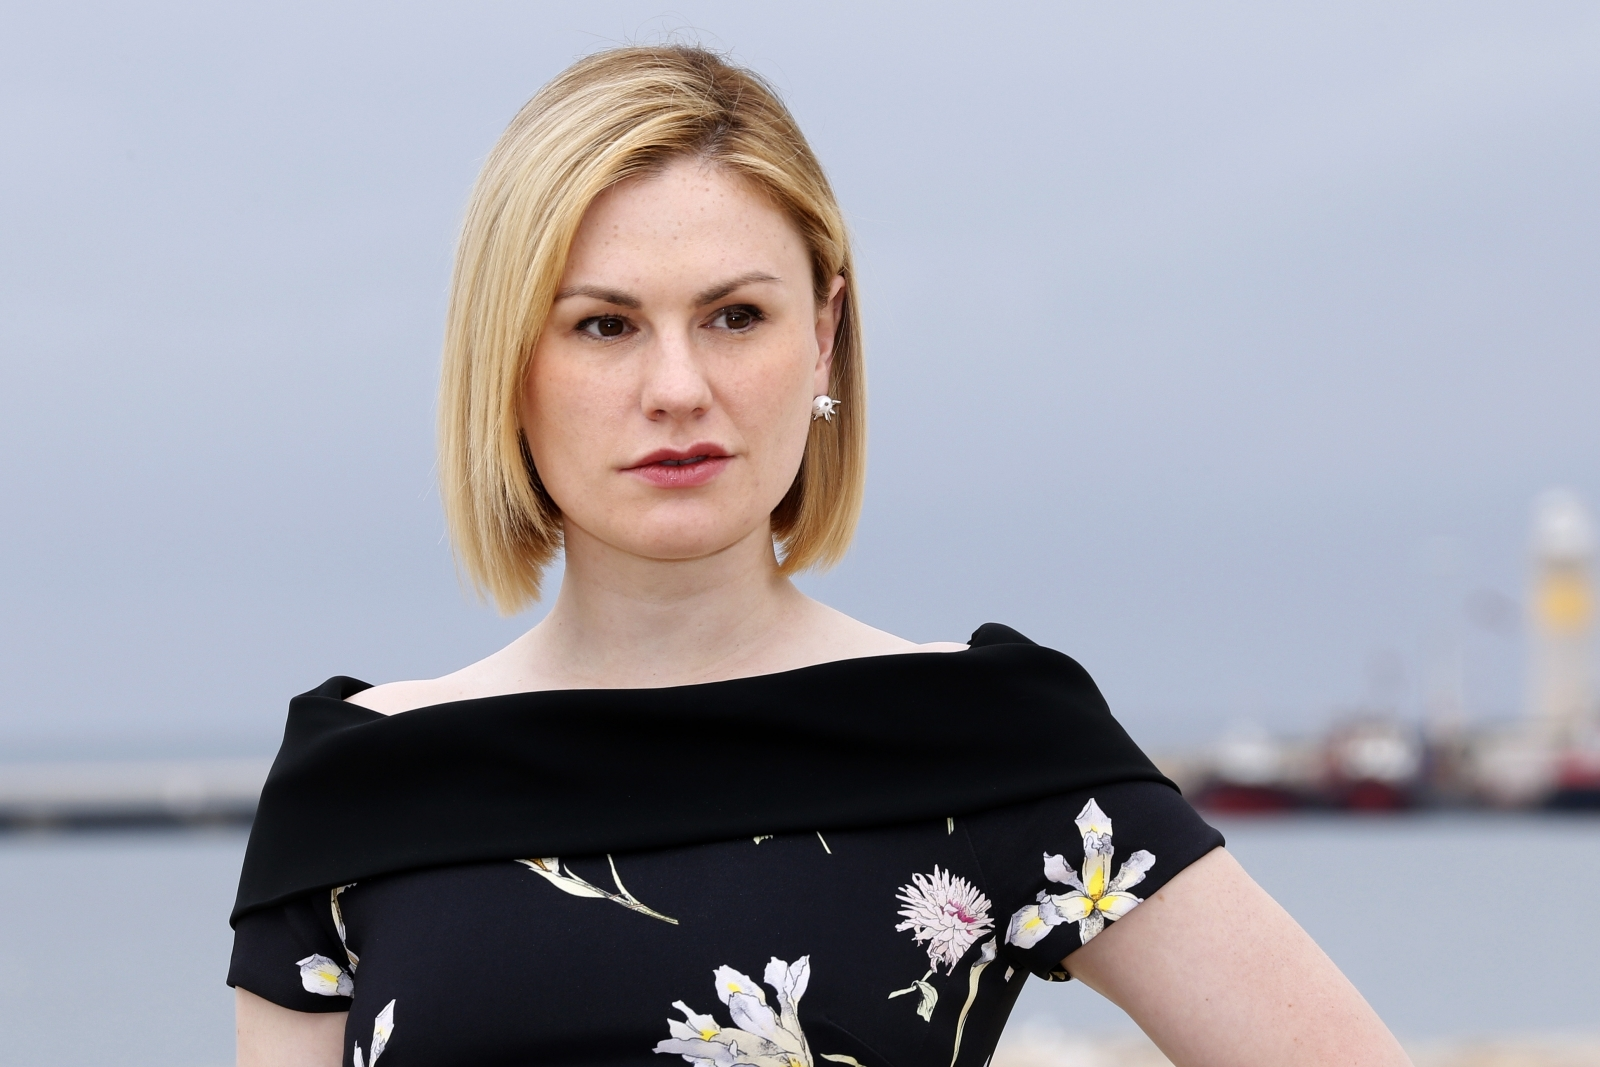 BBC accidentally airs Anna Paquin's naked breasts during news broadcast